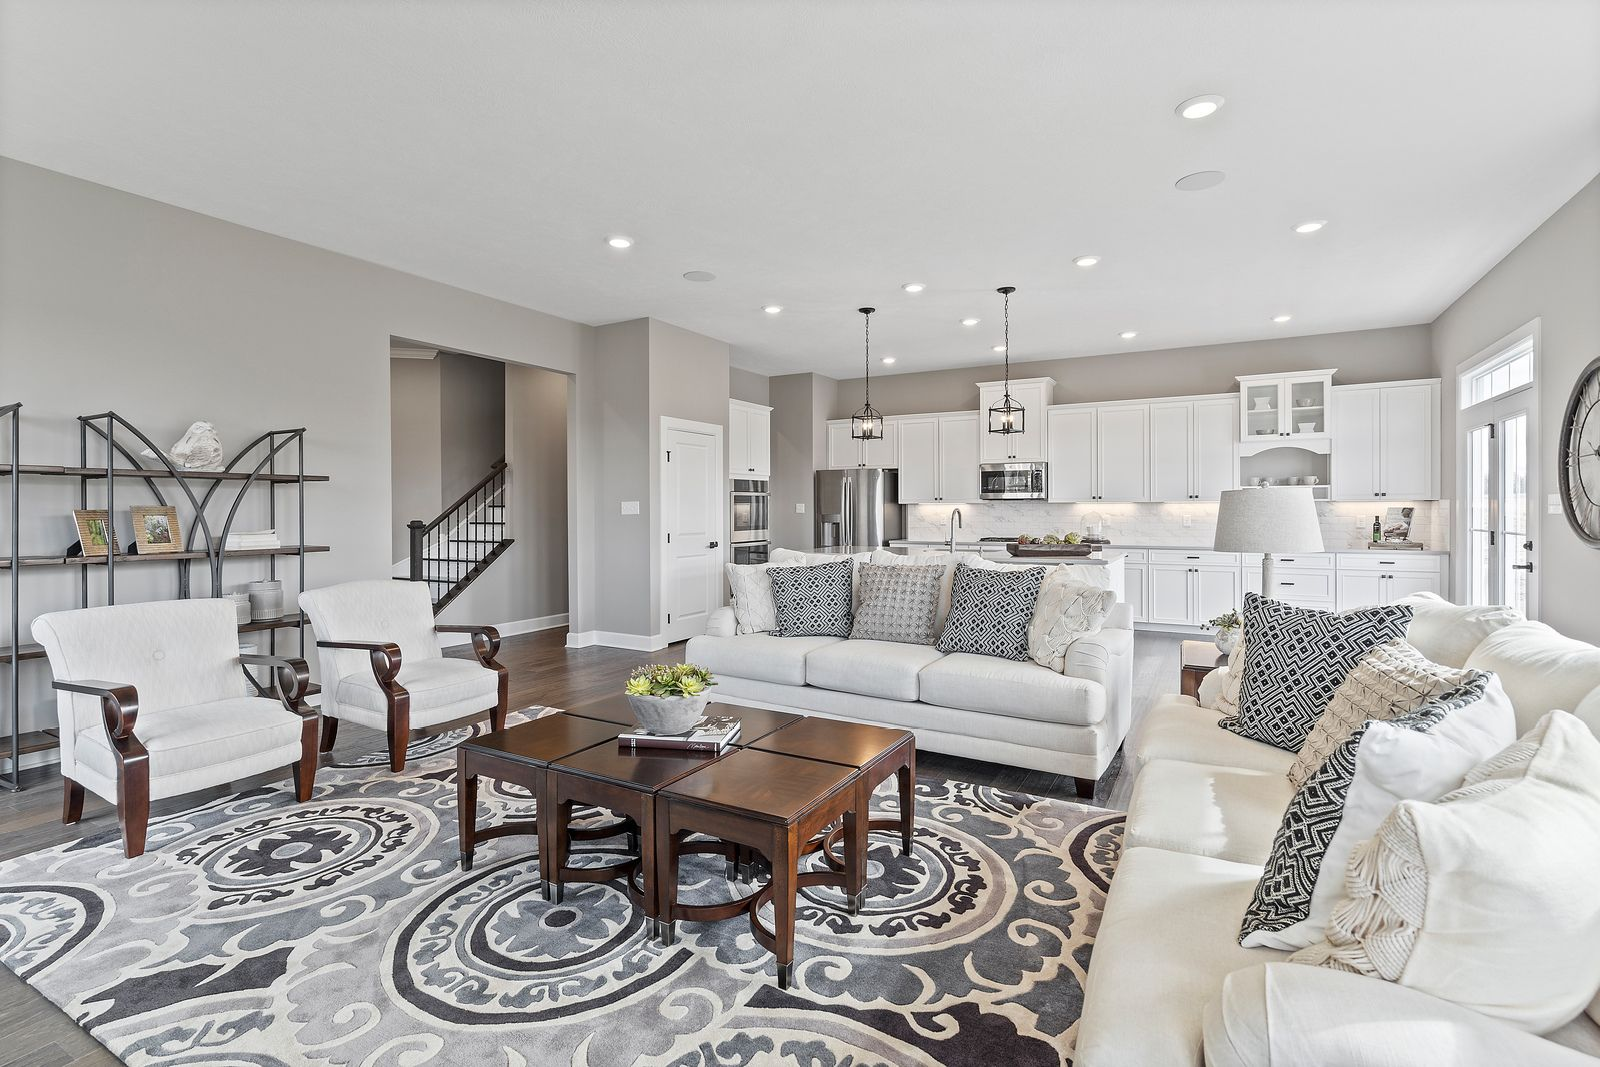 Living Area featured in the Springmanor Grande By HeartlandHomes in Pittsburgh, PA